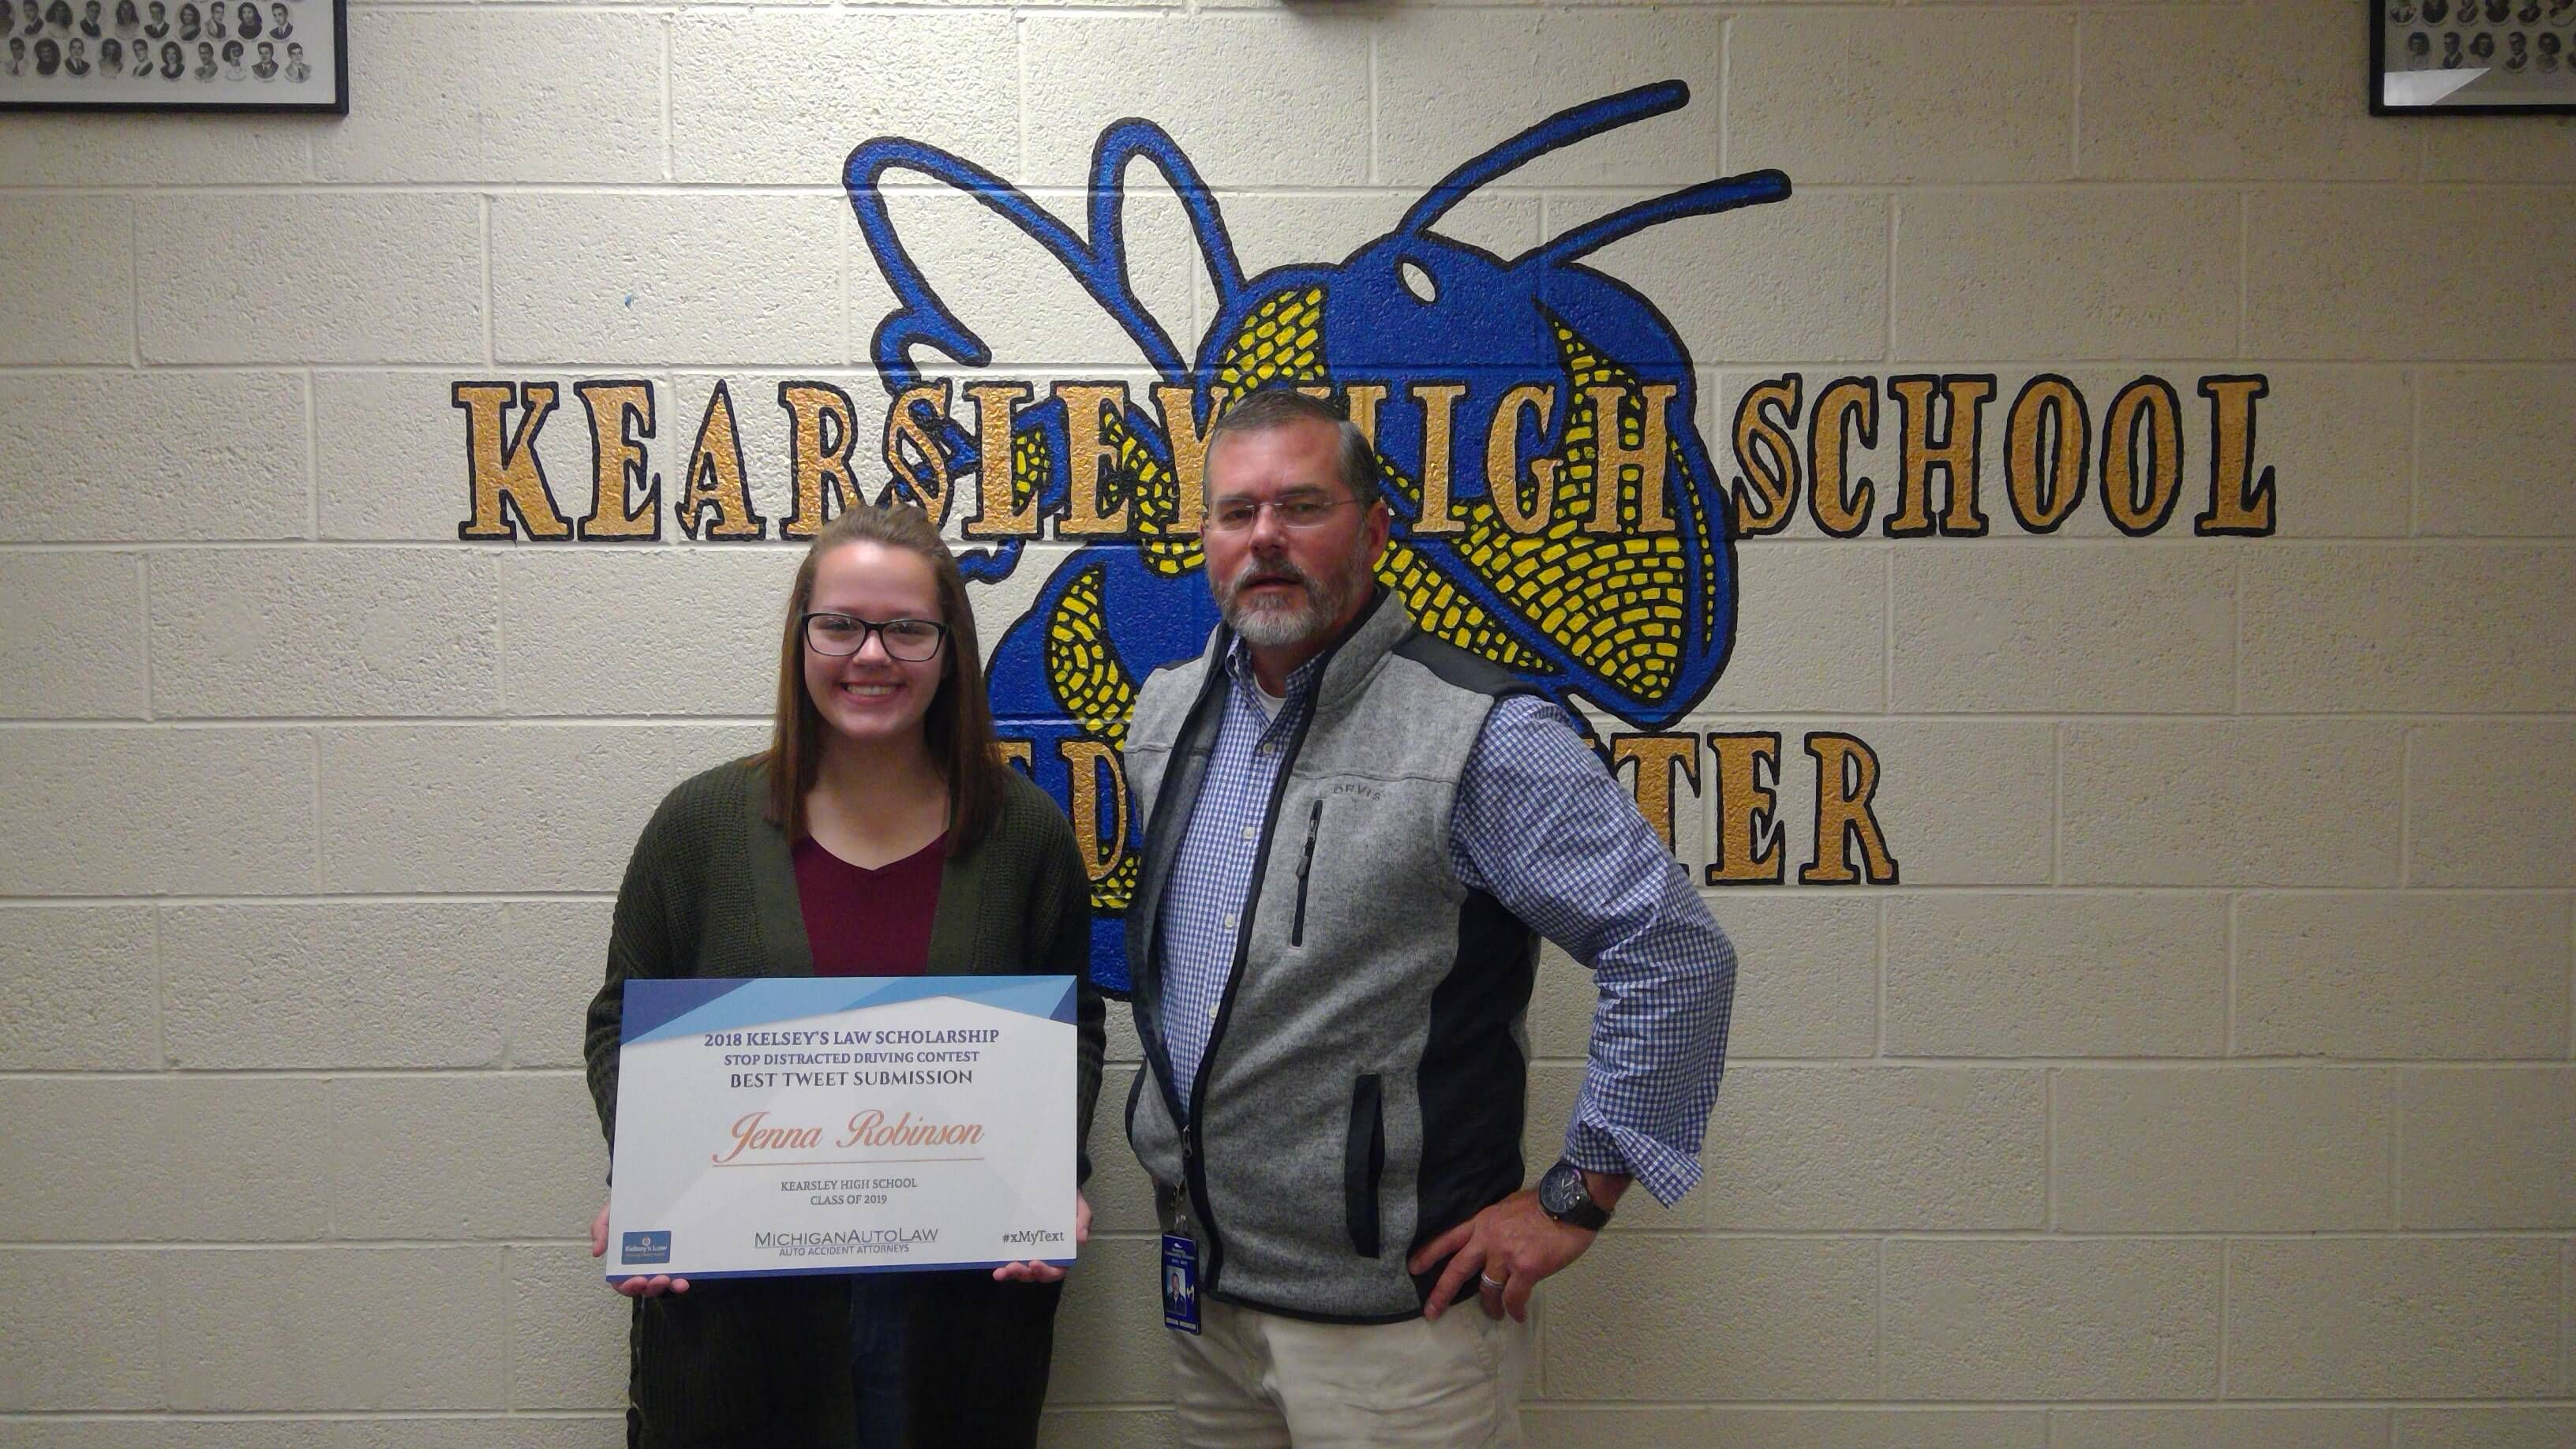 Kelsey's Law Distracted Driving Scholarship 2018 Winner for Best Tweet: Jenna Robinson